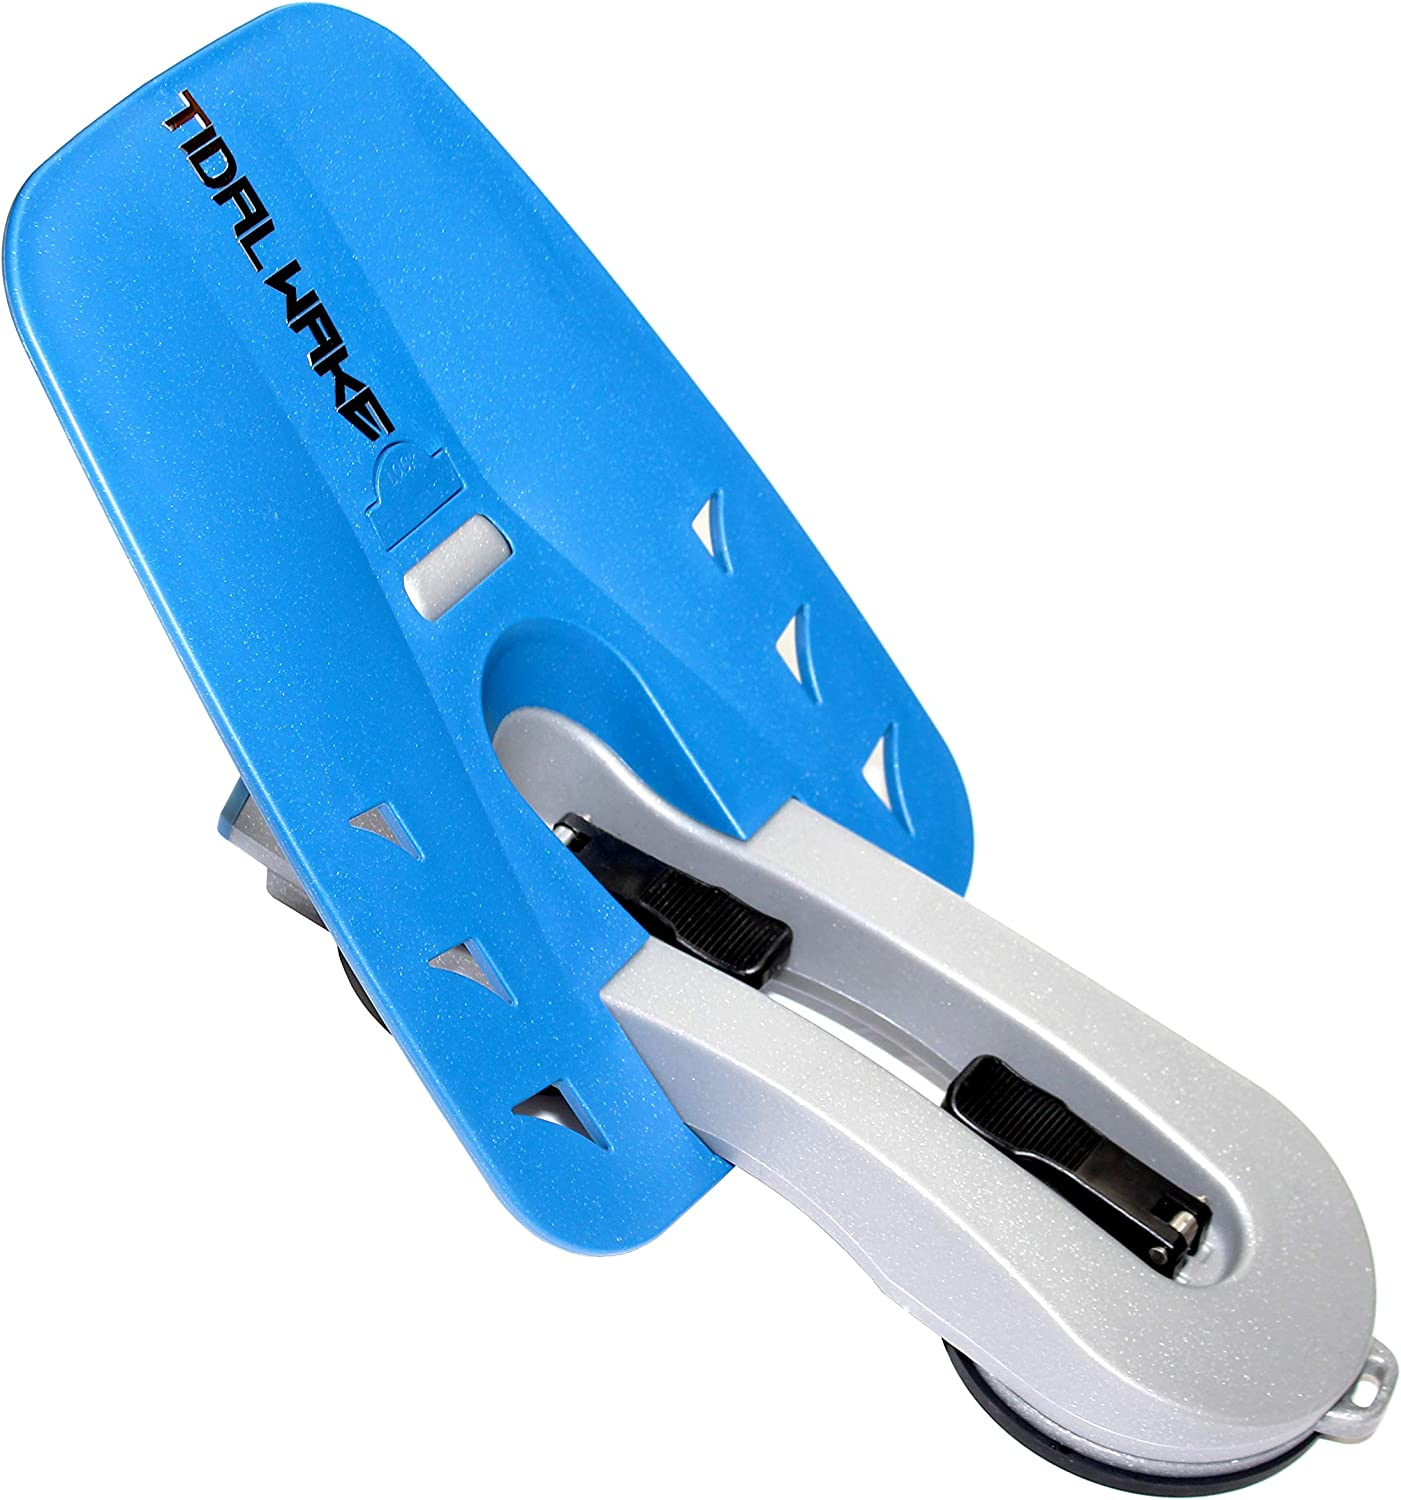 Tidal Wake XLR8 Wake Surf Shaper Wave Generator for inboard, Forward & V-Drive Boats | Floating Wakesurf Creator | Compact Storage (Silver/Blue)